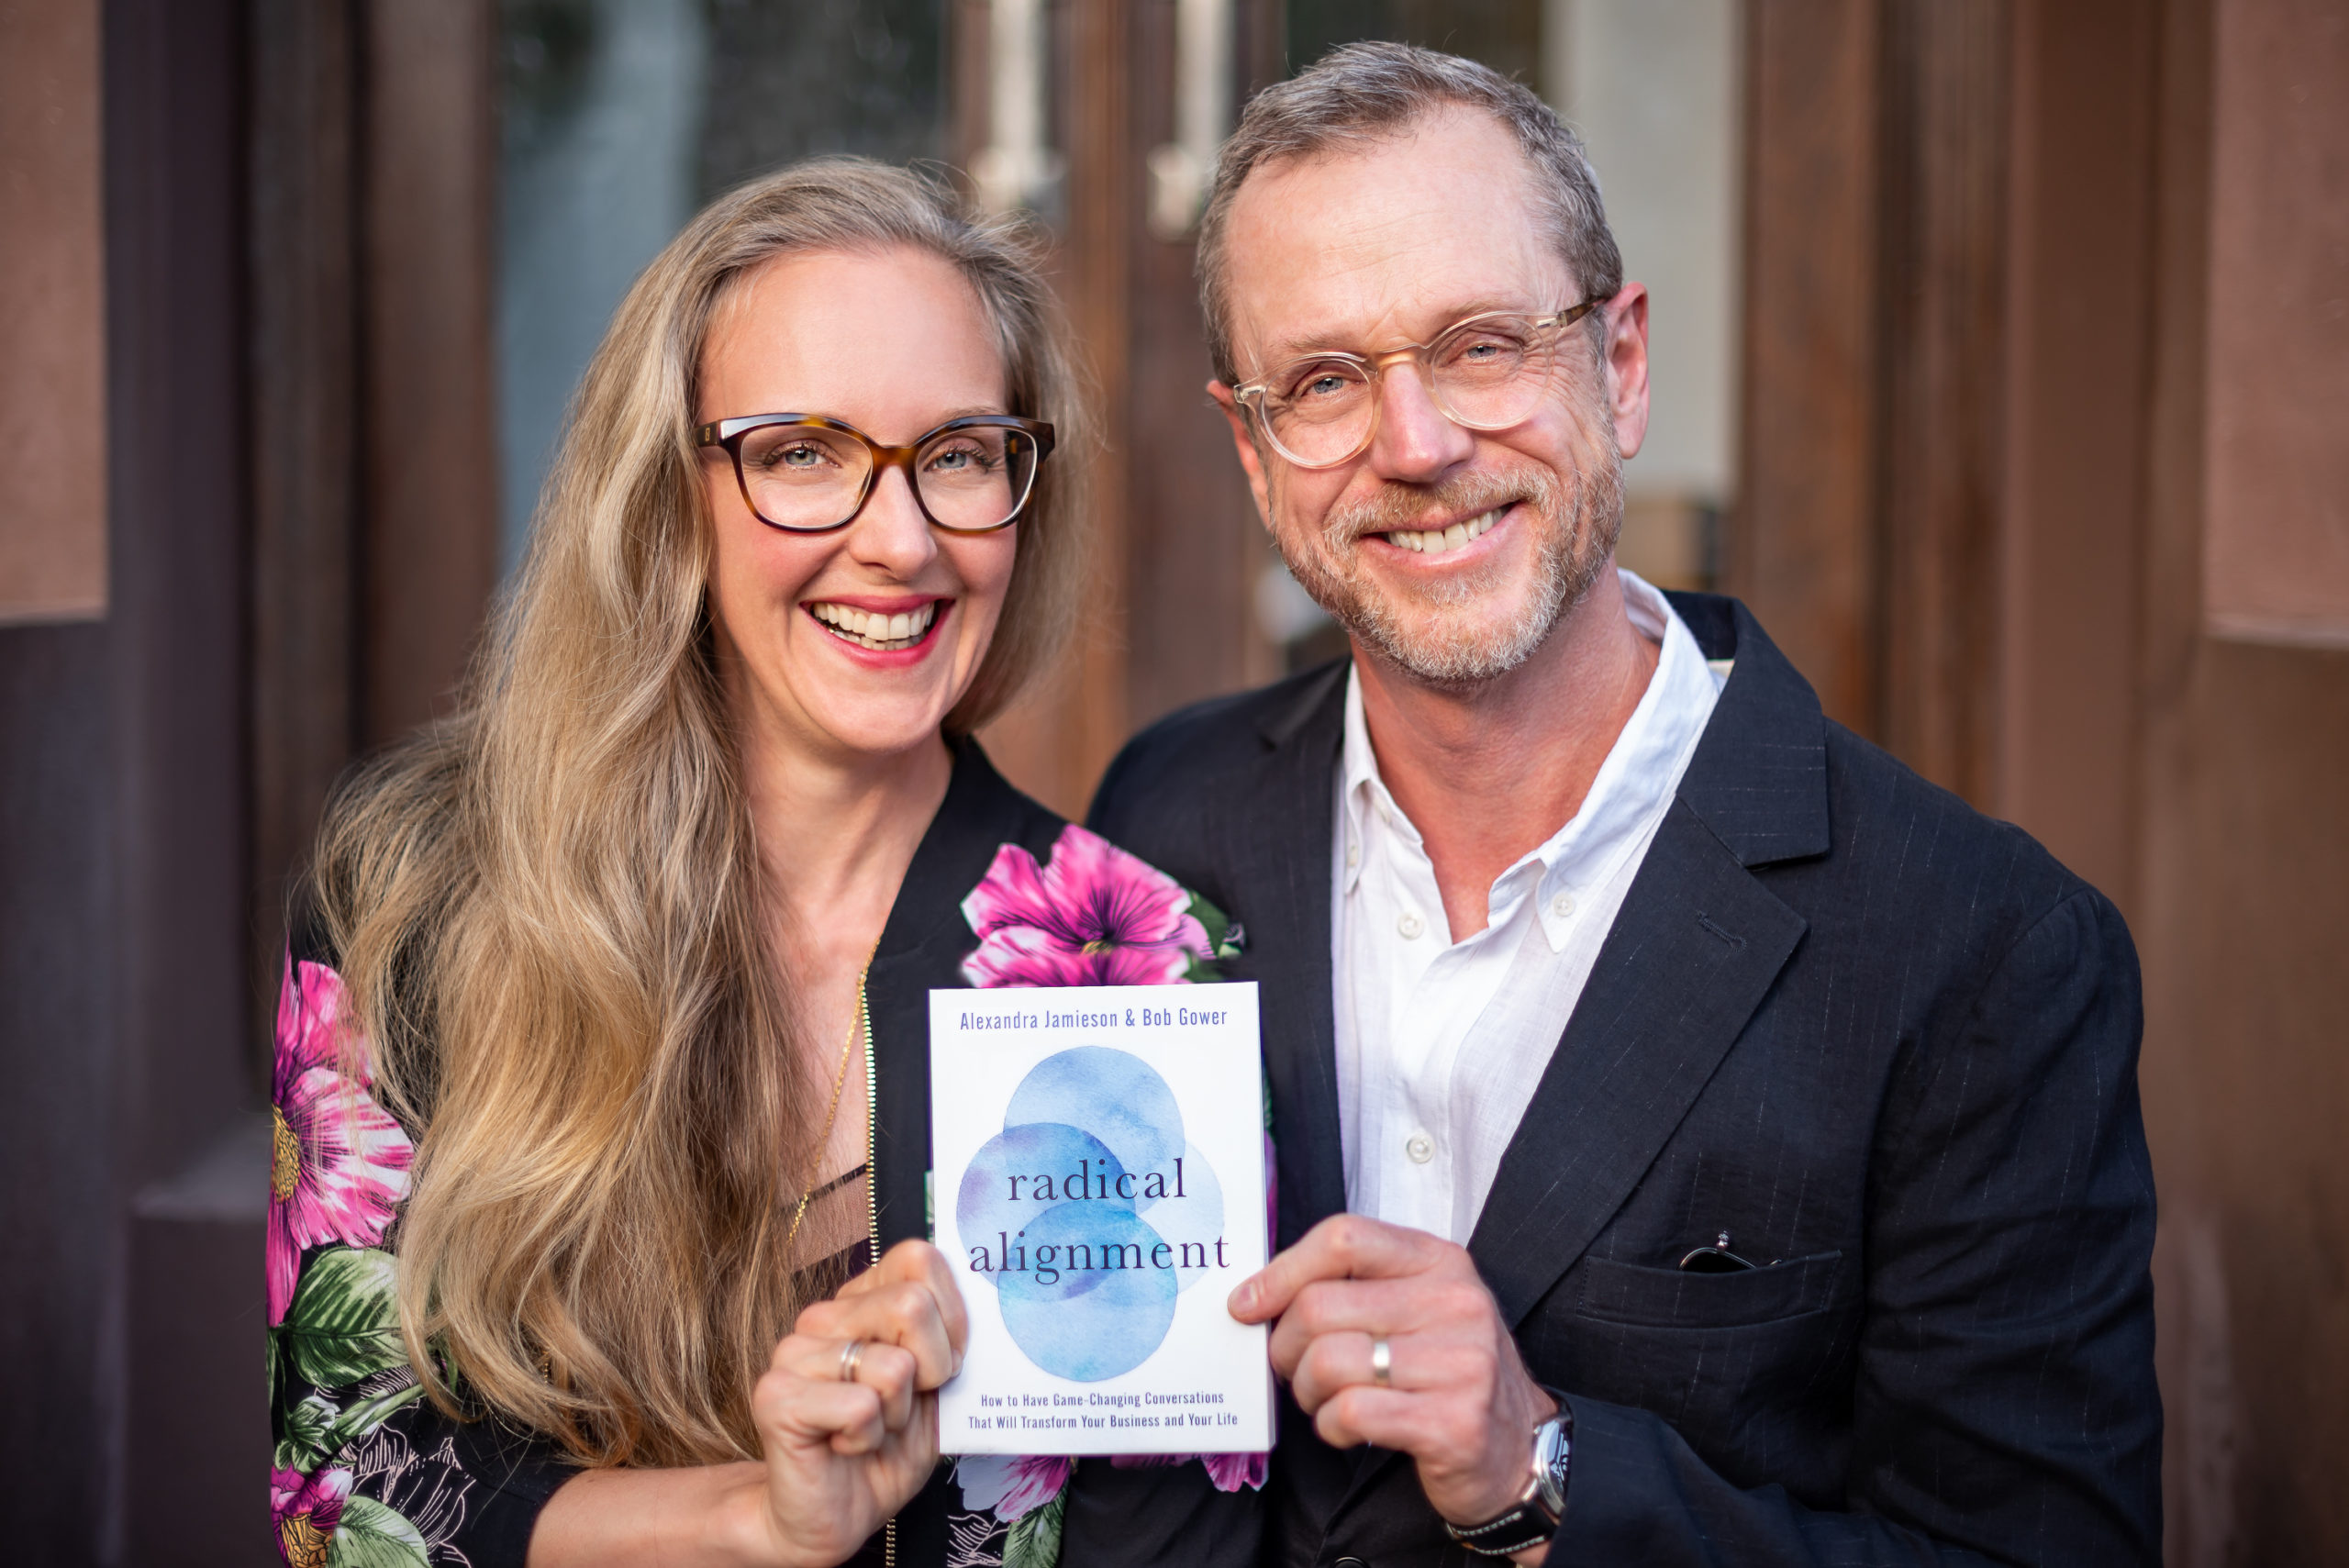 Alexandra Jamieson and Bob Gower hold a copy of their new book, Radical Alignment